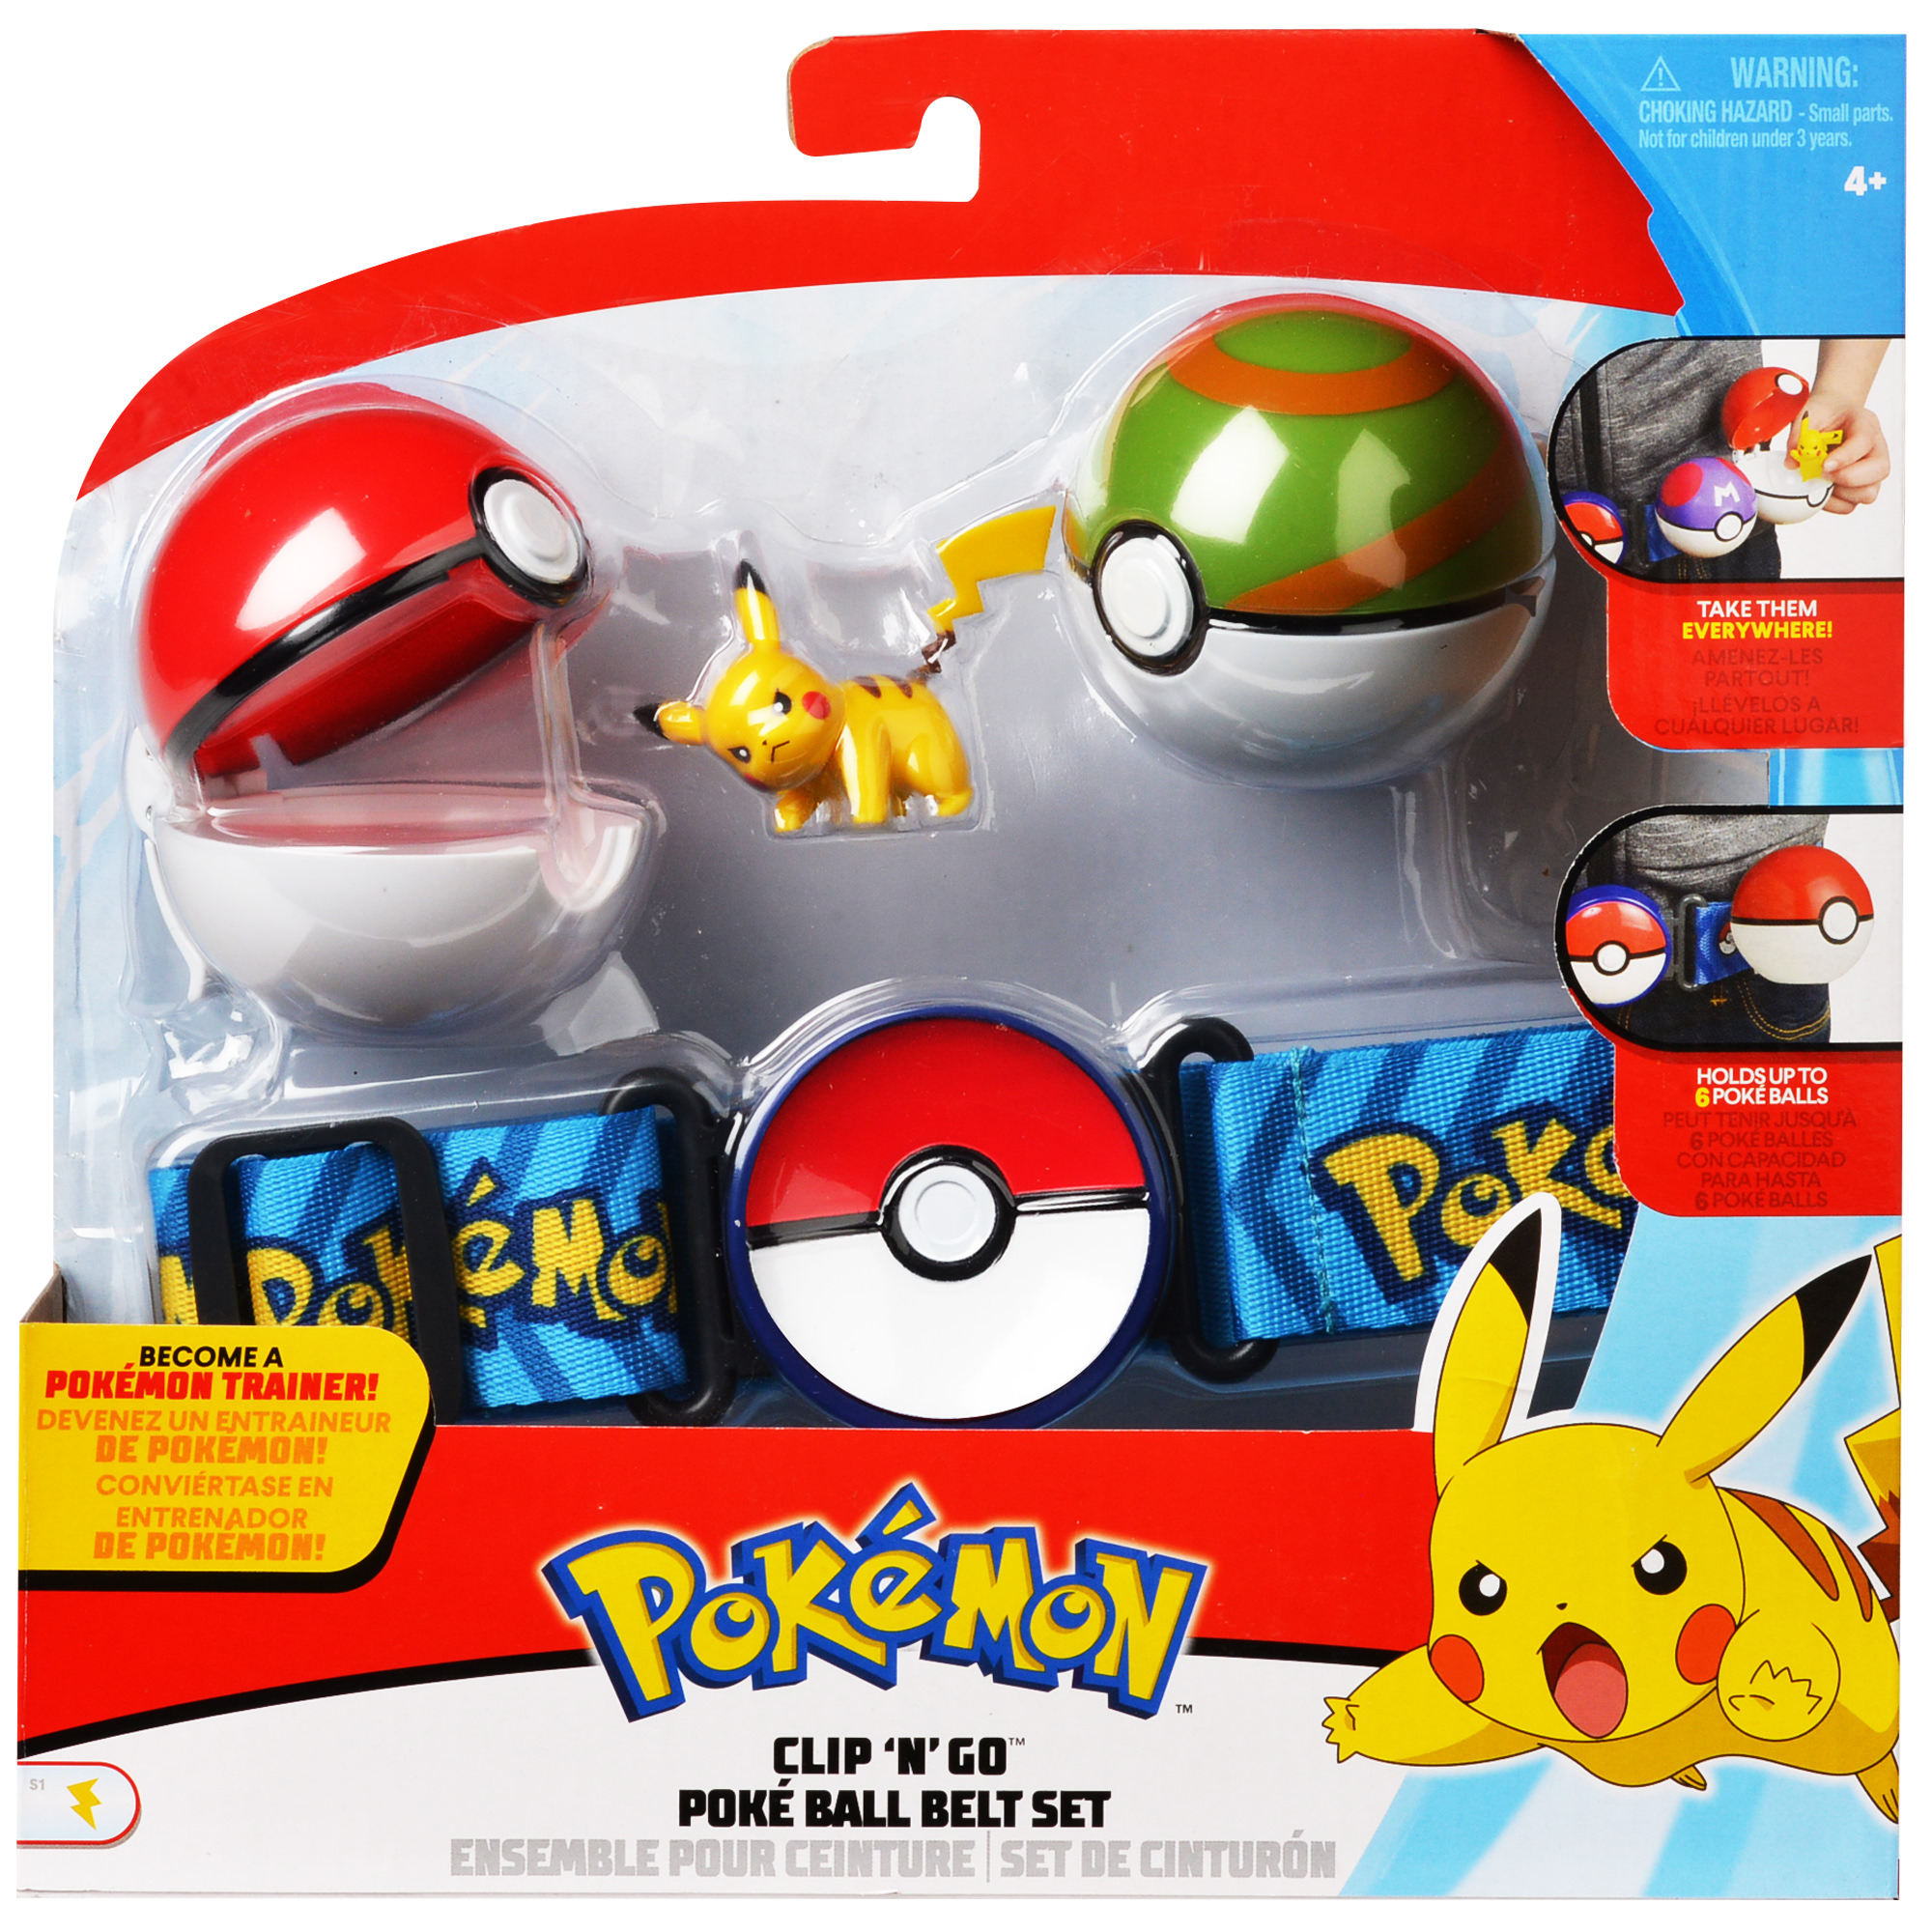 Pokemon Poke Ball Clip N Go Belt Set with 2 Inch Pikachu Figure by Wicked Cool Toys